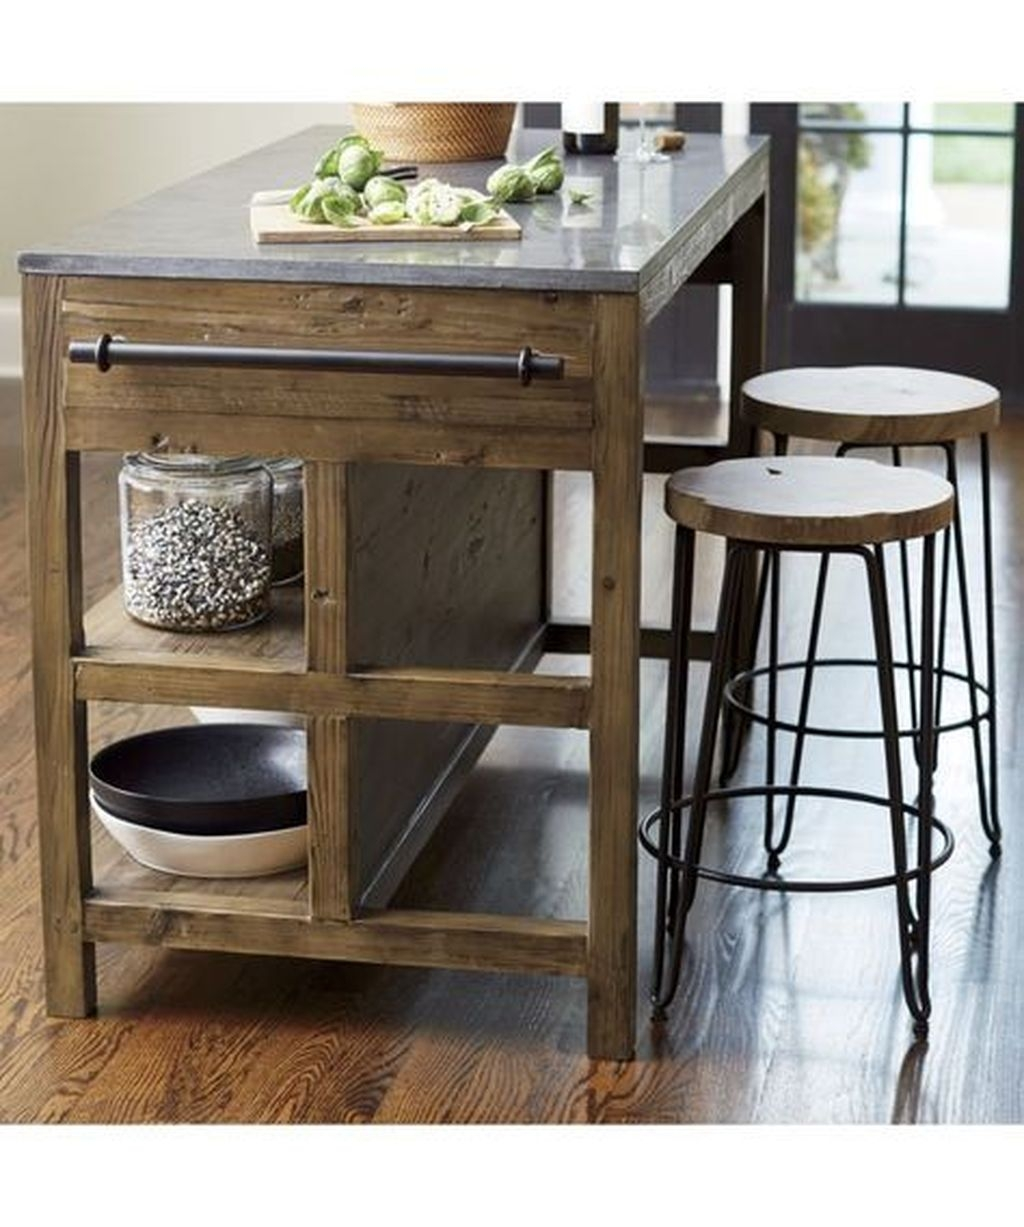 Awesome Rustic Kitchen Island Design Ideas 10